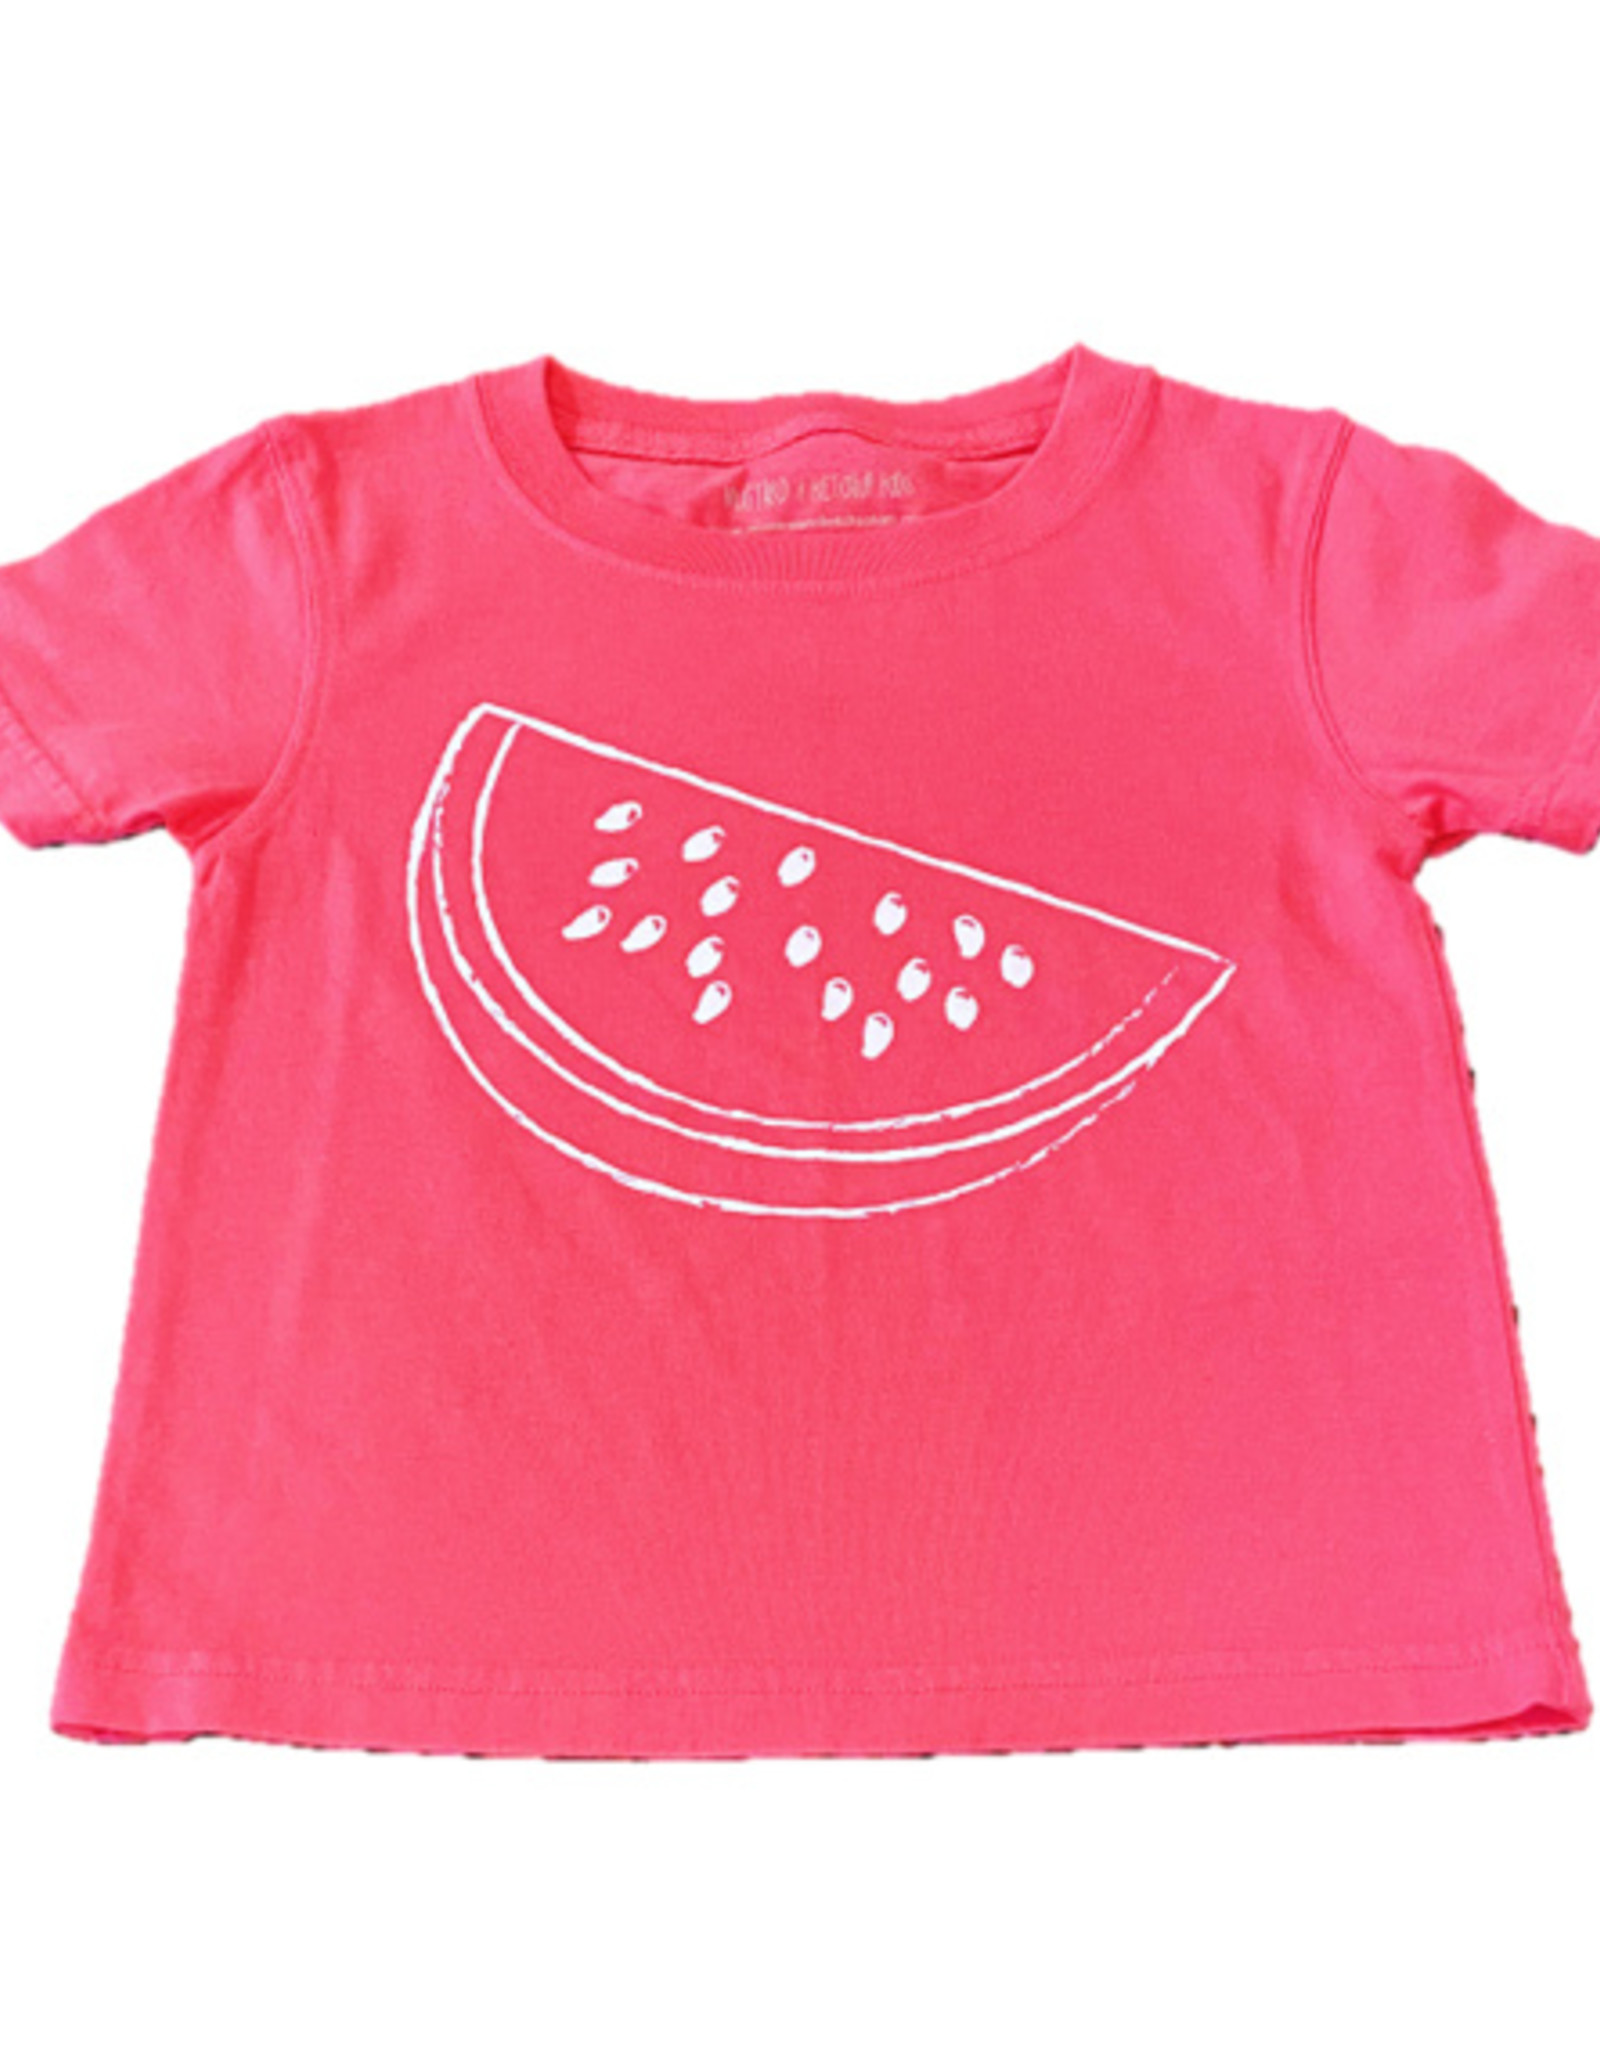 Mustard & ketchup Hot Pink Watermelon Tee